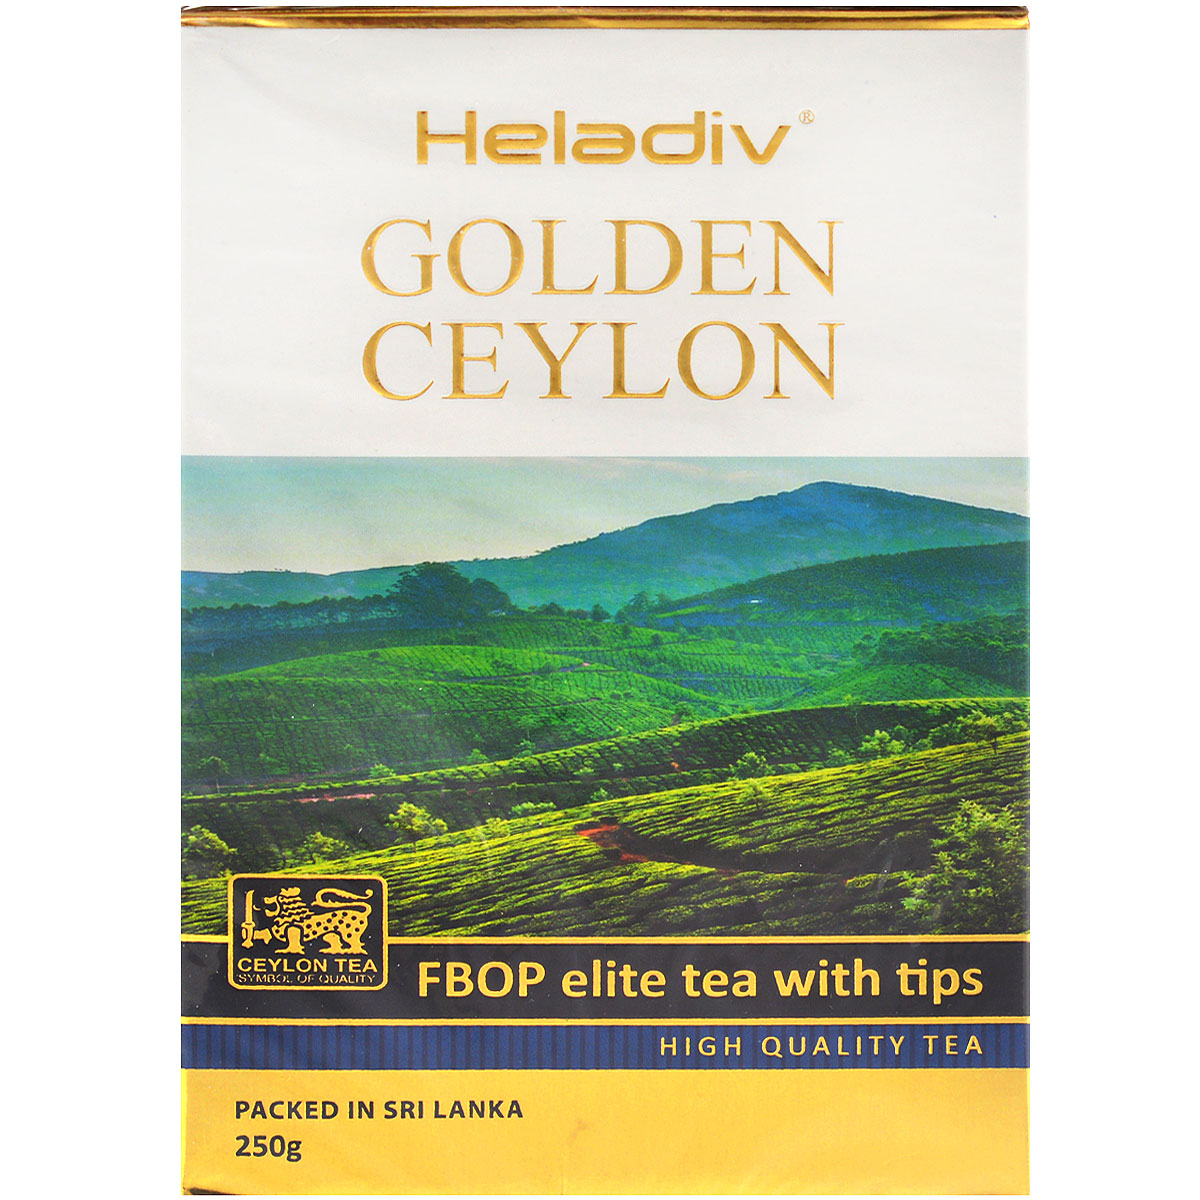 Heladiv Golden Ceylon Fbop Elite Tea with Tips черный листовой чай, 250 г 2015 arrival vacuum pack lapsang souchong canton village black tea 500g ceylon assam premium selection count special pearl milk